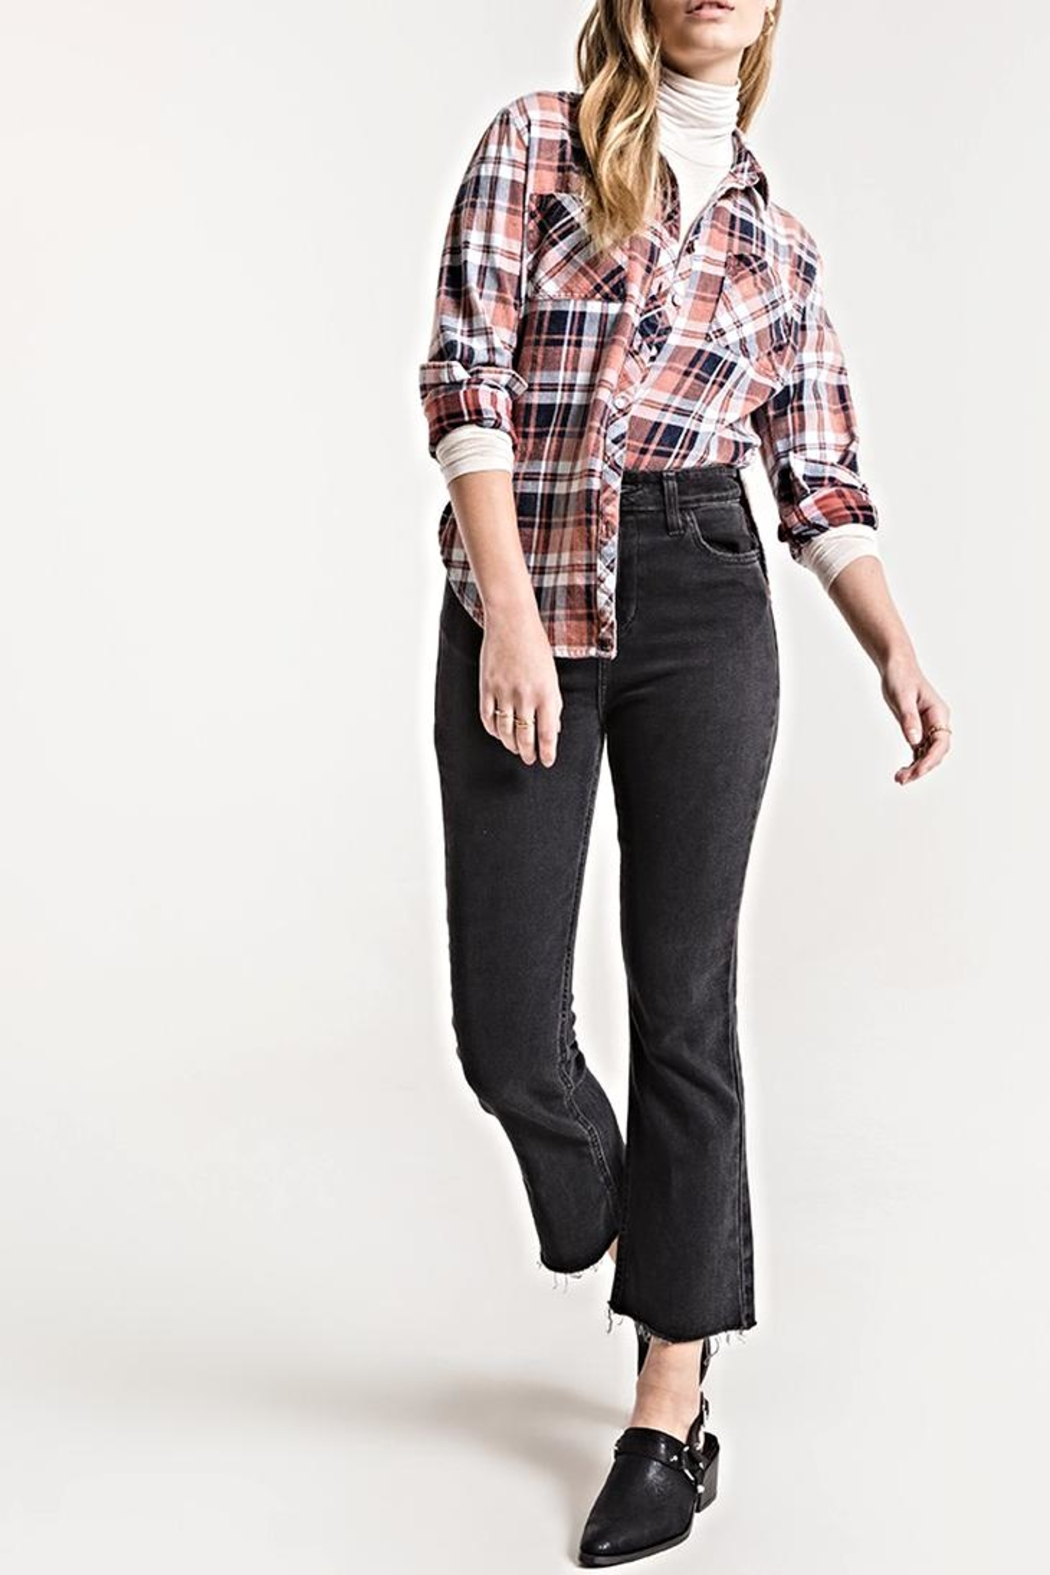 White Crow Plaid Button-Up Top - Main Image